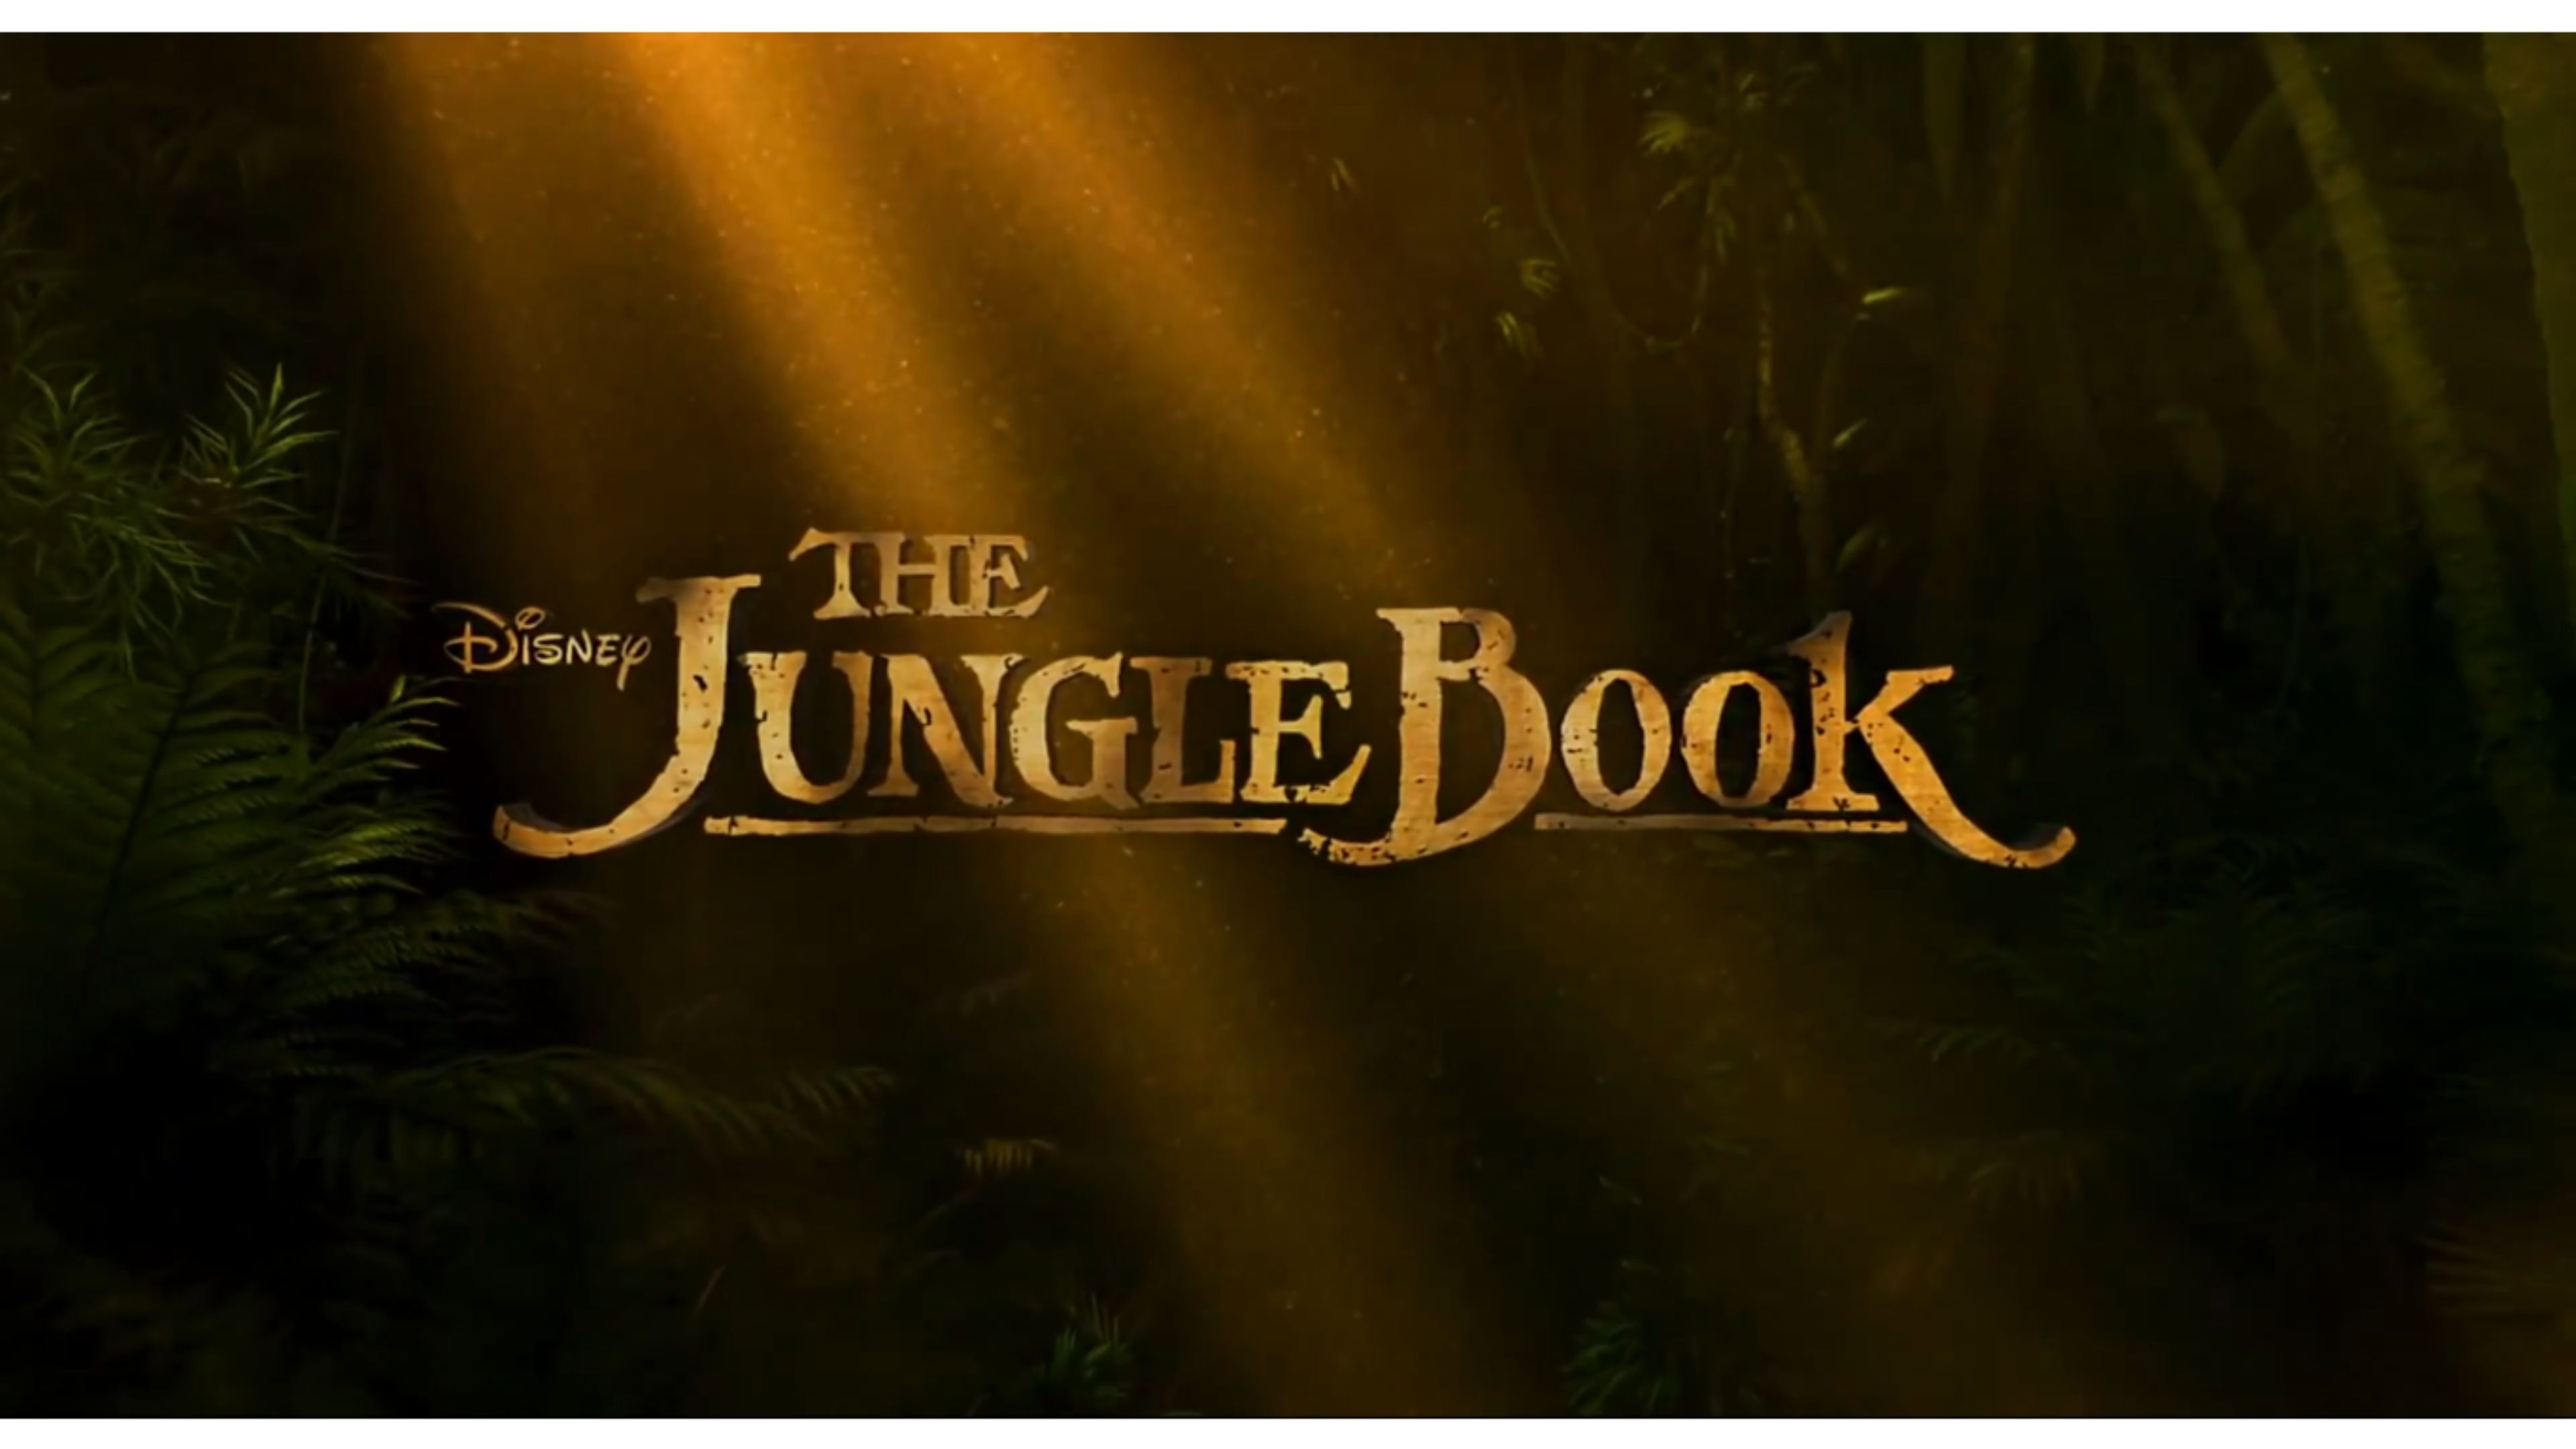 3840x2160px jungle book wallpaper - wallpapersafari